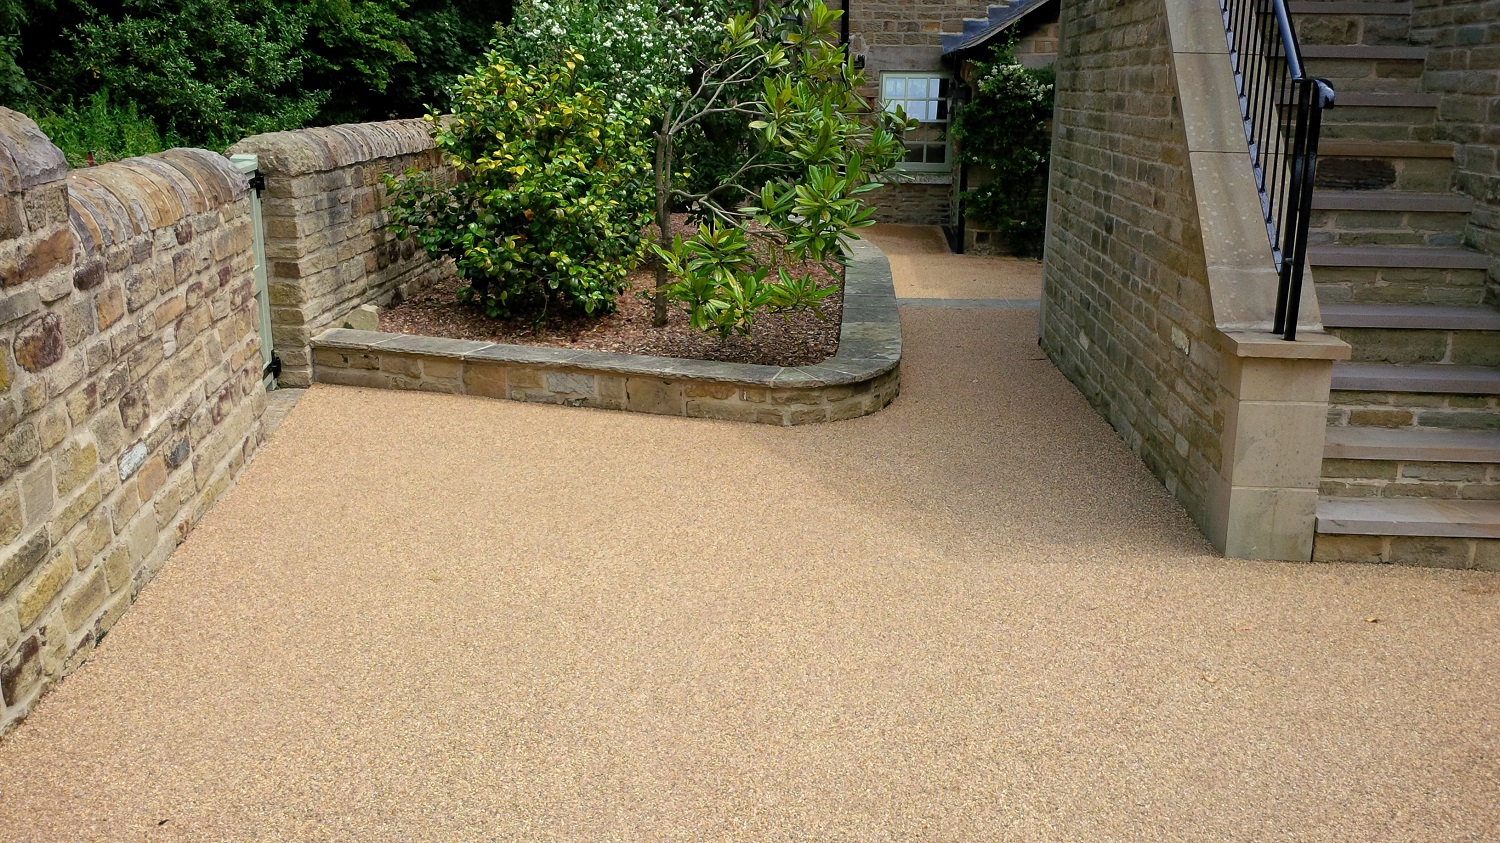 B7c - Resin Bonded Driveway Surfacing at Wingerworth in Chesterfield